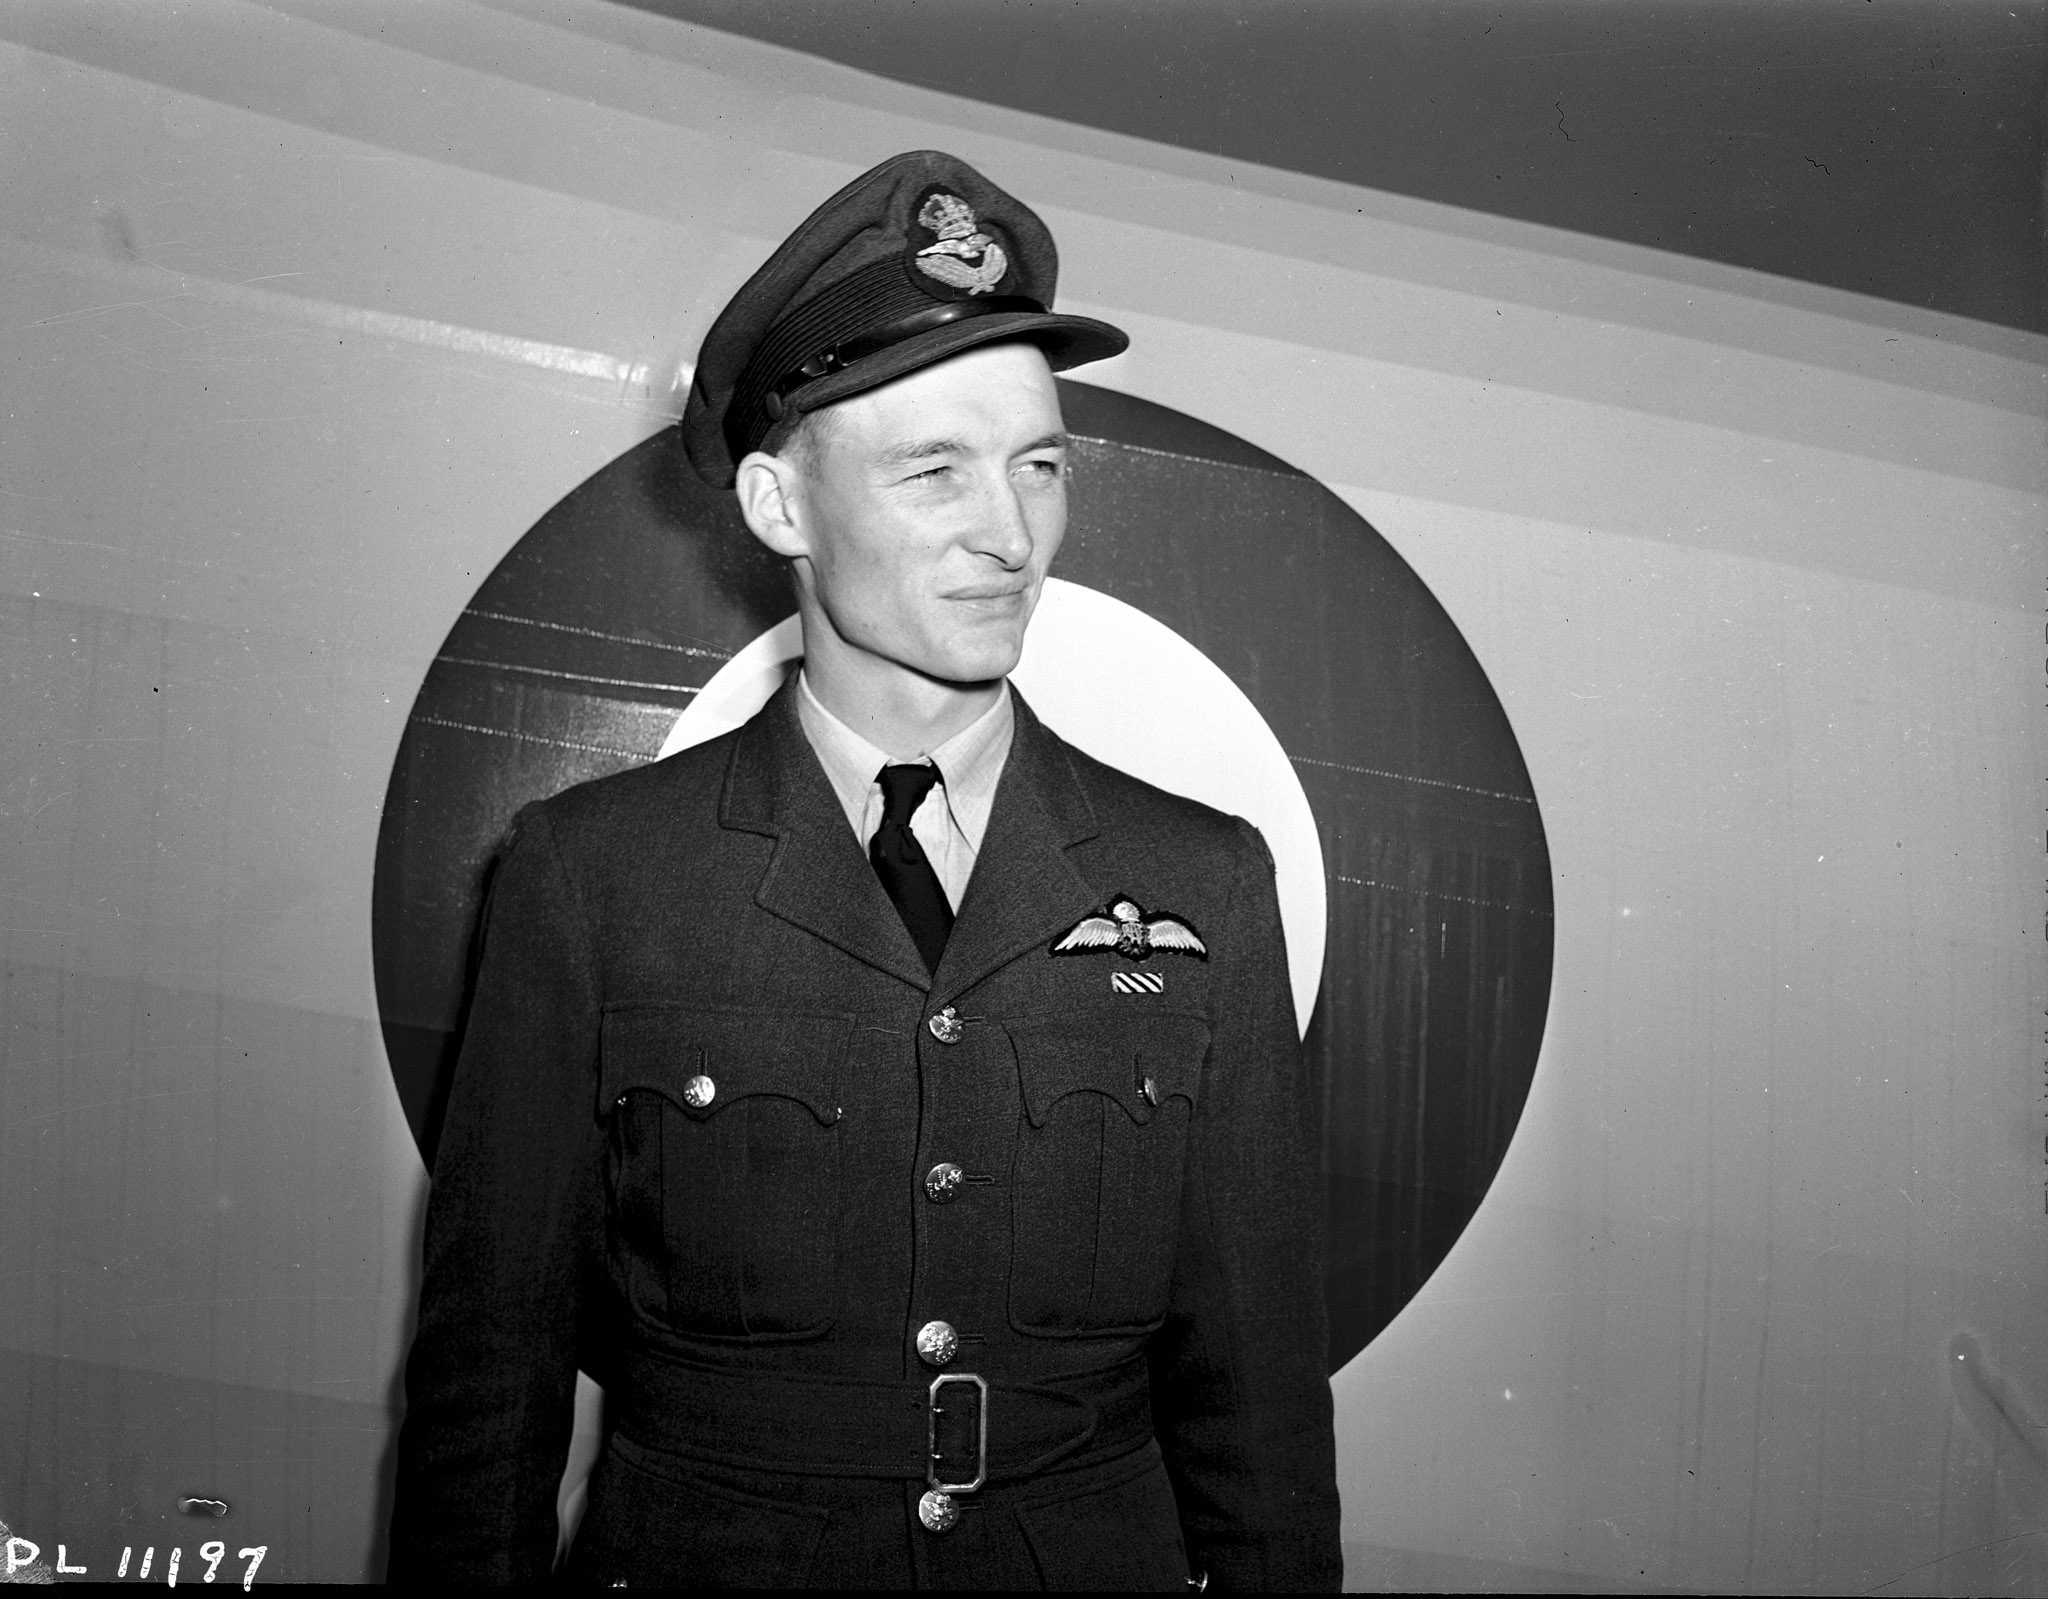 Le sous-lieutenant d'aviation John Higham, DFC, du 419e Escadron, le 4 septembre 1942. PHOTO : Archives du MDN, PL-11197